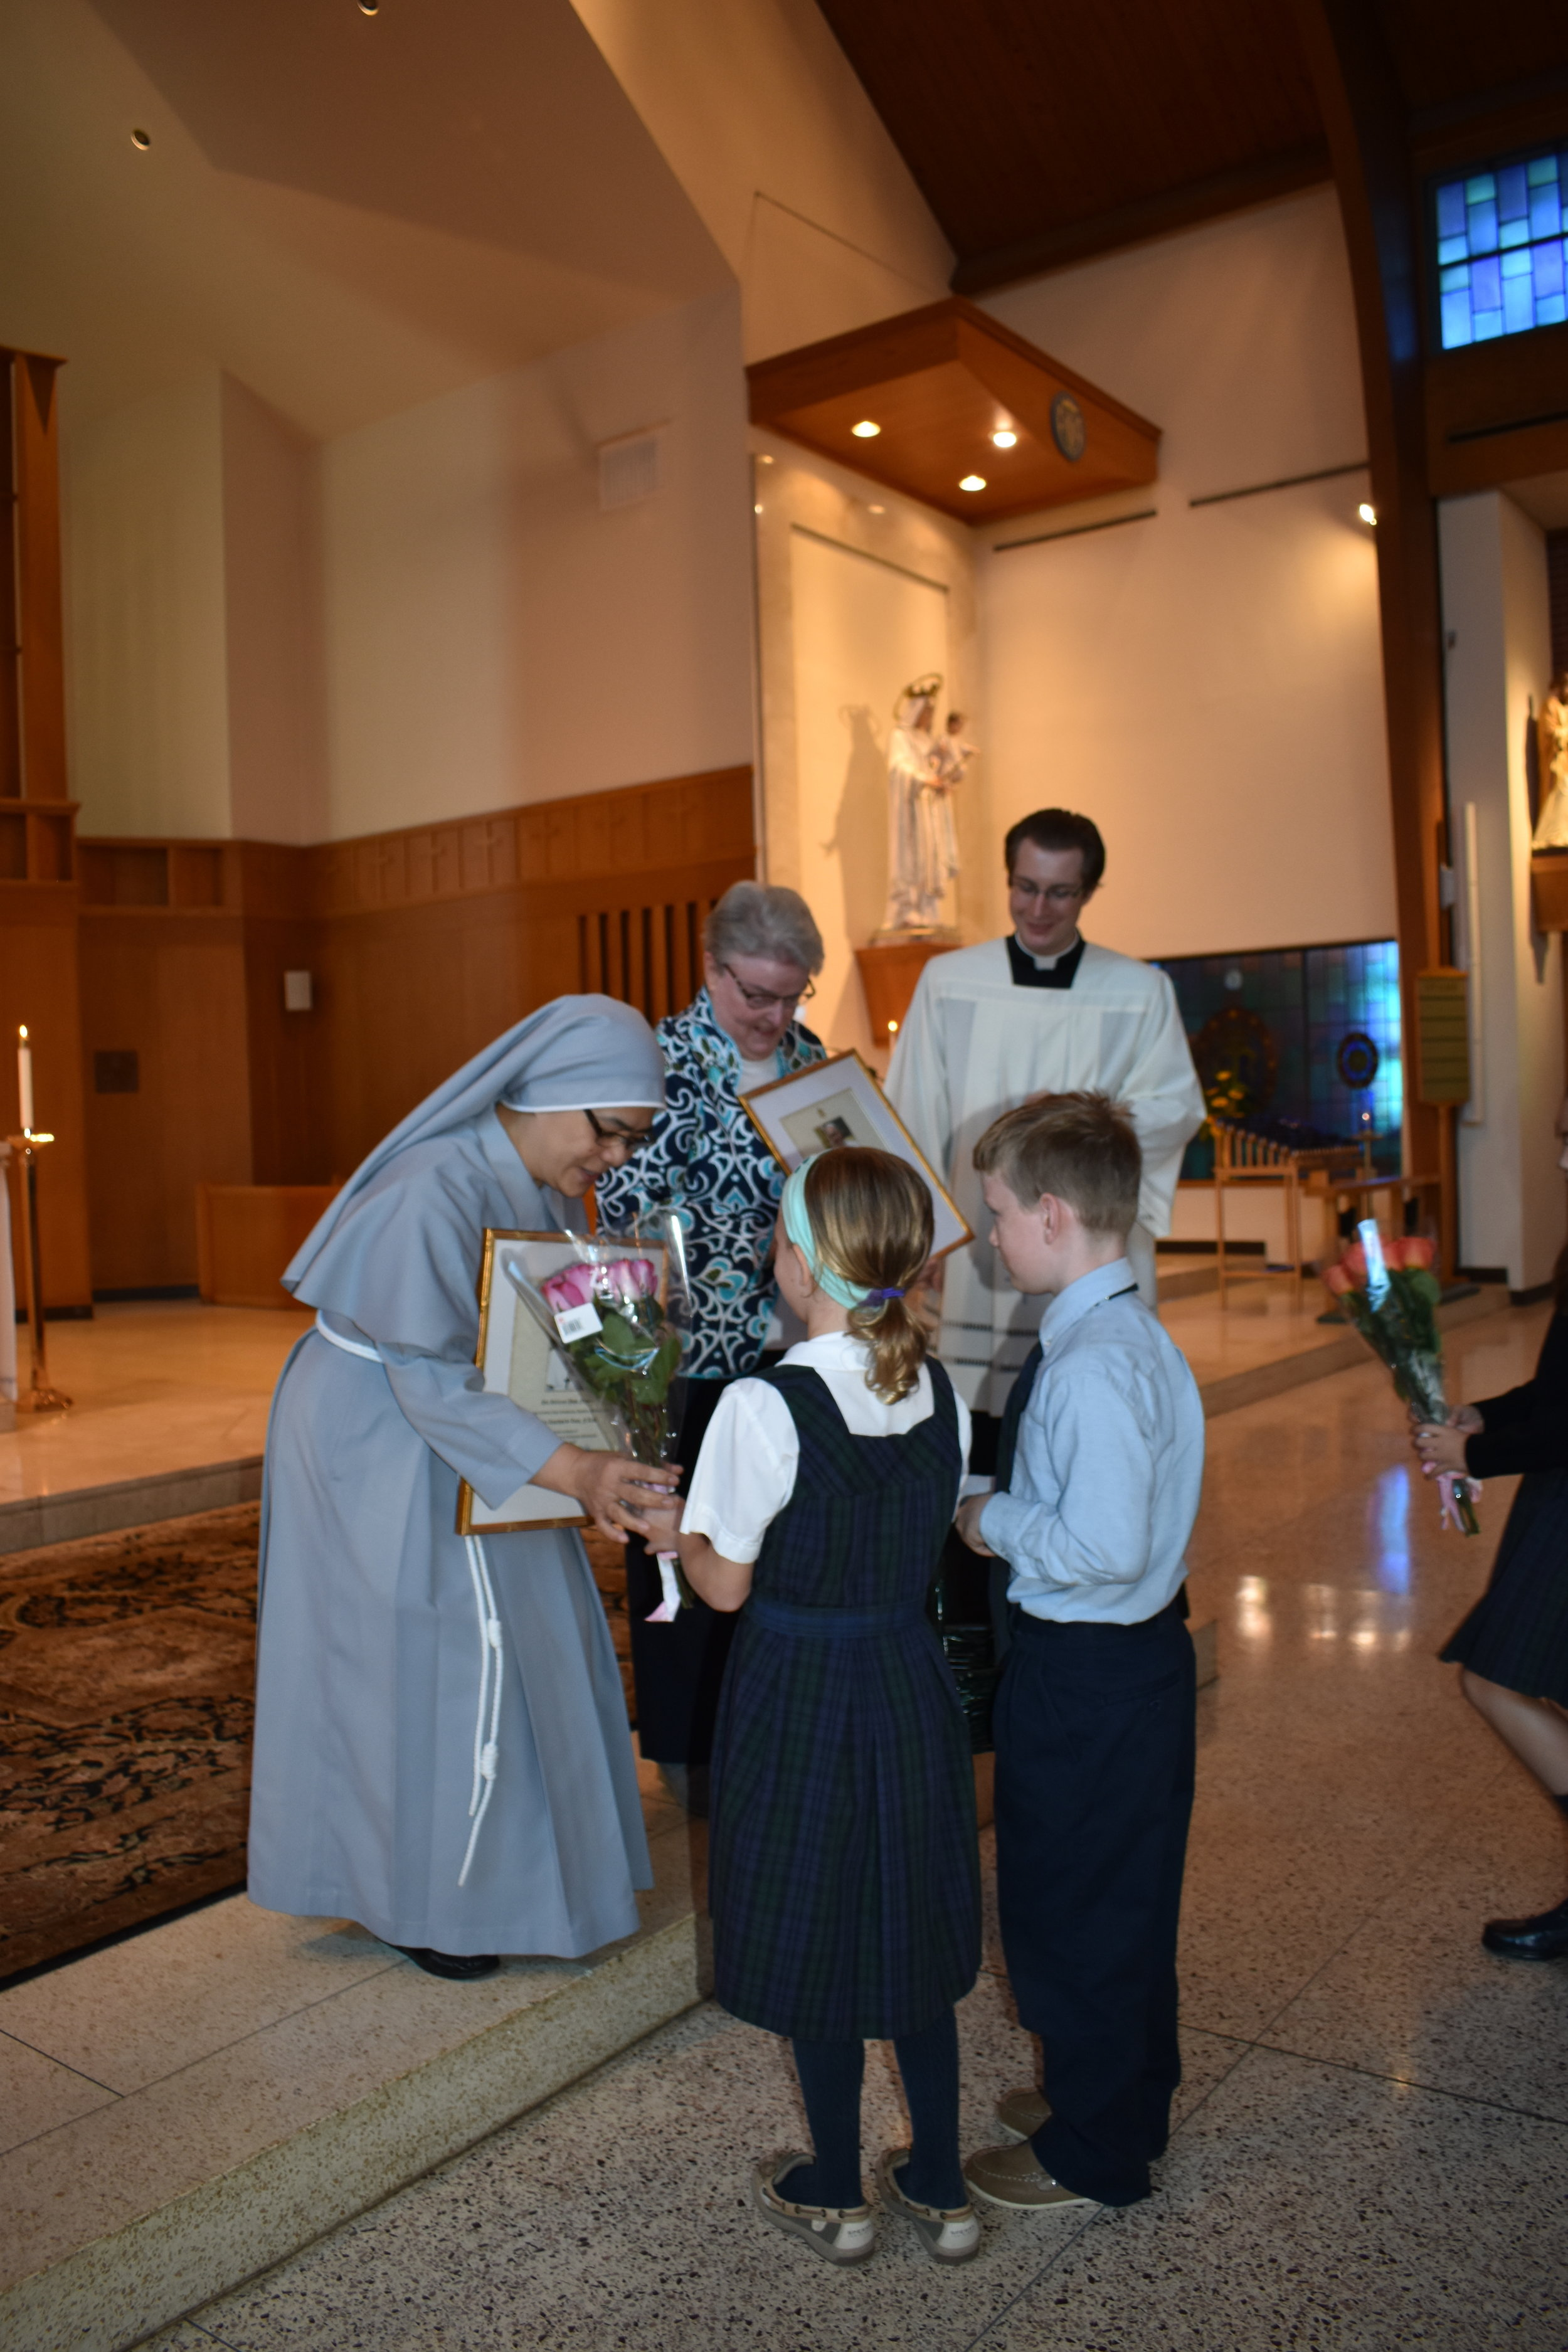 Sister Jeanne Barry, RSM and Sister Lourdes DeLeon, FAS are congratulated by the OLM School children on their annivesaries of relgious profession.